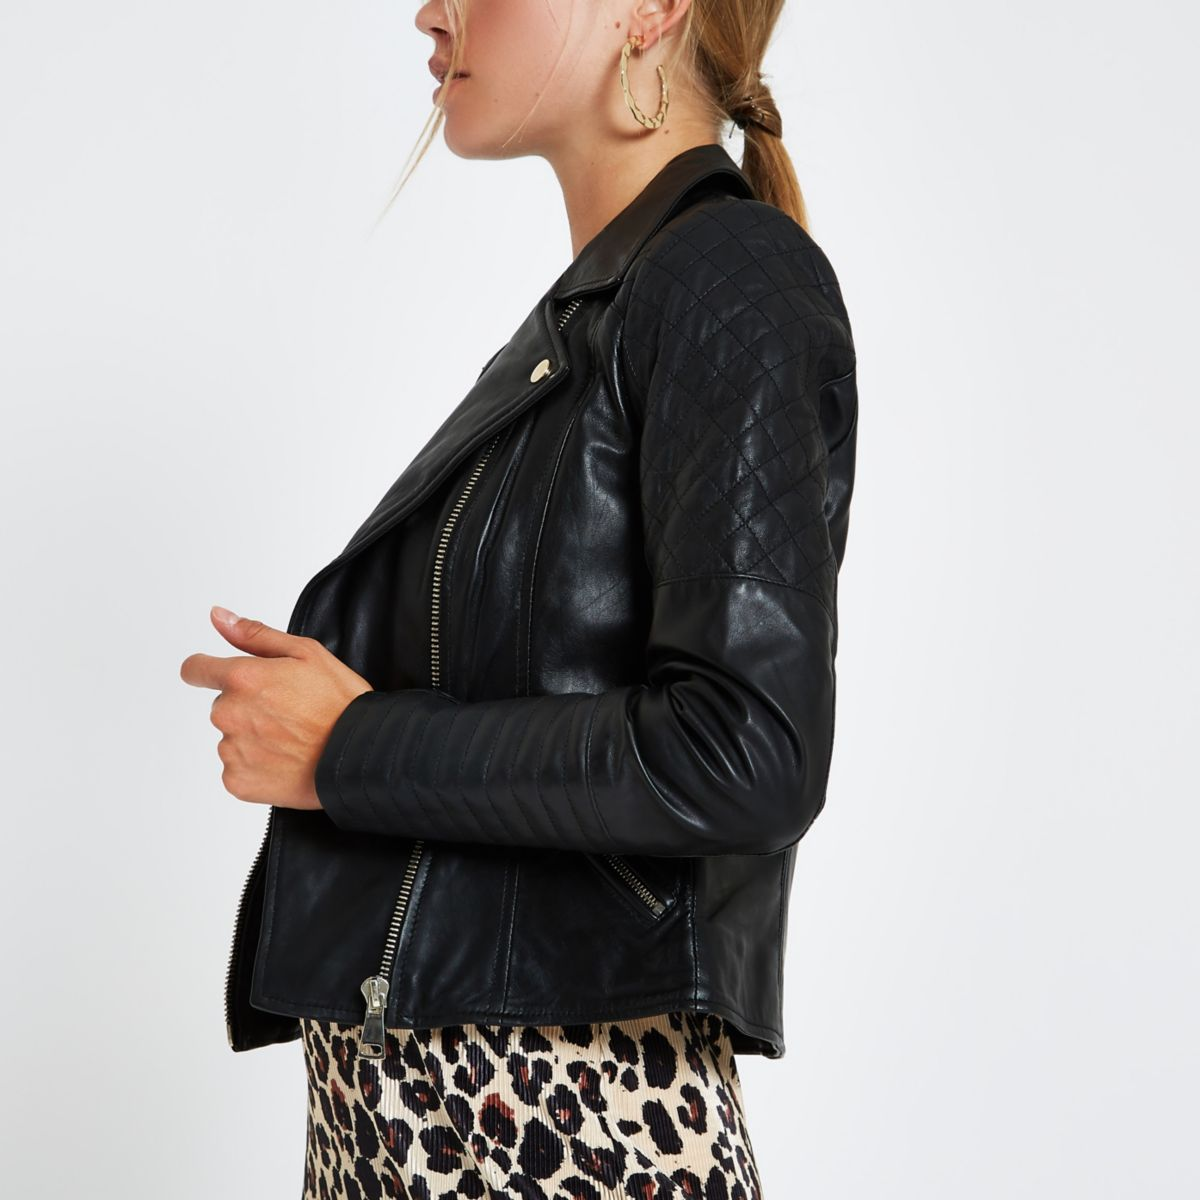 Black leather quilted biker jacket - Jackets - Coats & Jackets - women : leather quilted biker jacket - Adamdwight.com